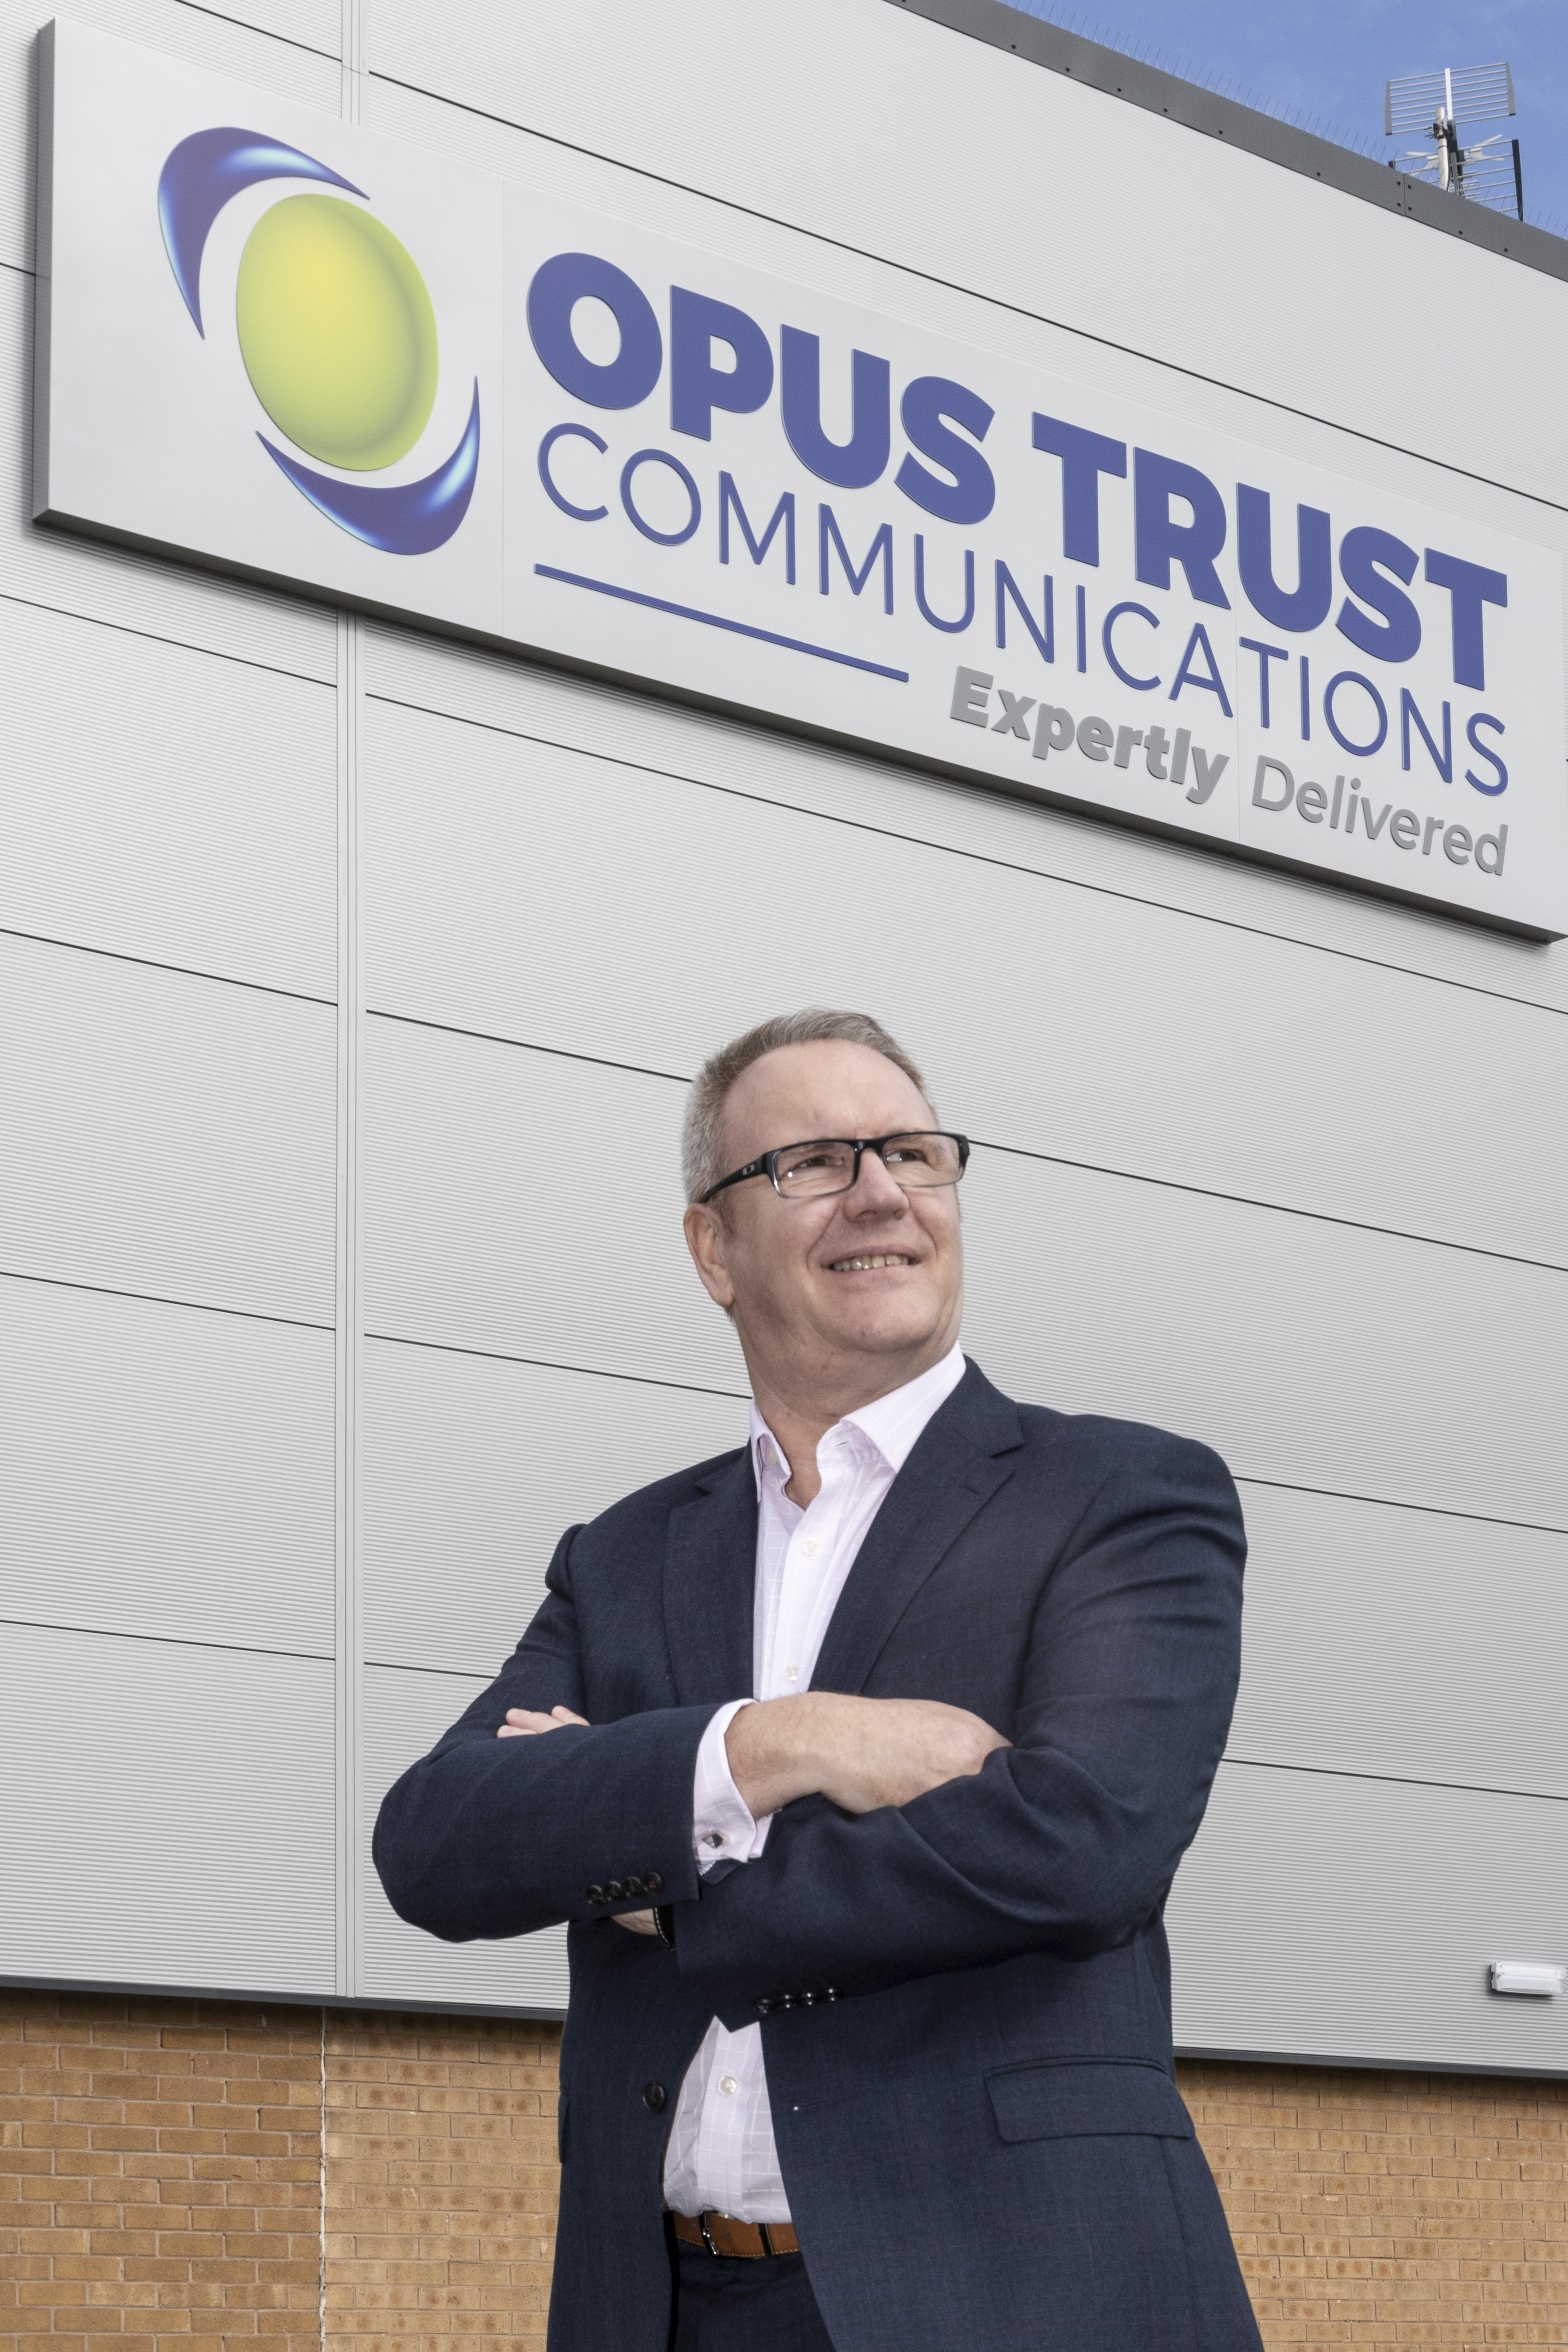 OPUS TRUST ANNOUNCES THE UK'S FIRST DIGITAL PARTNERSHIP WITH QUADIENT